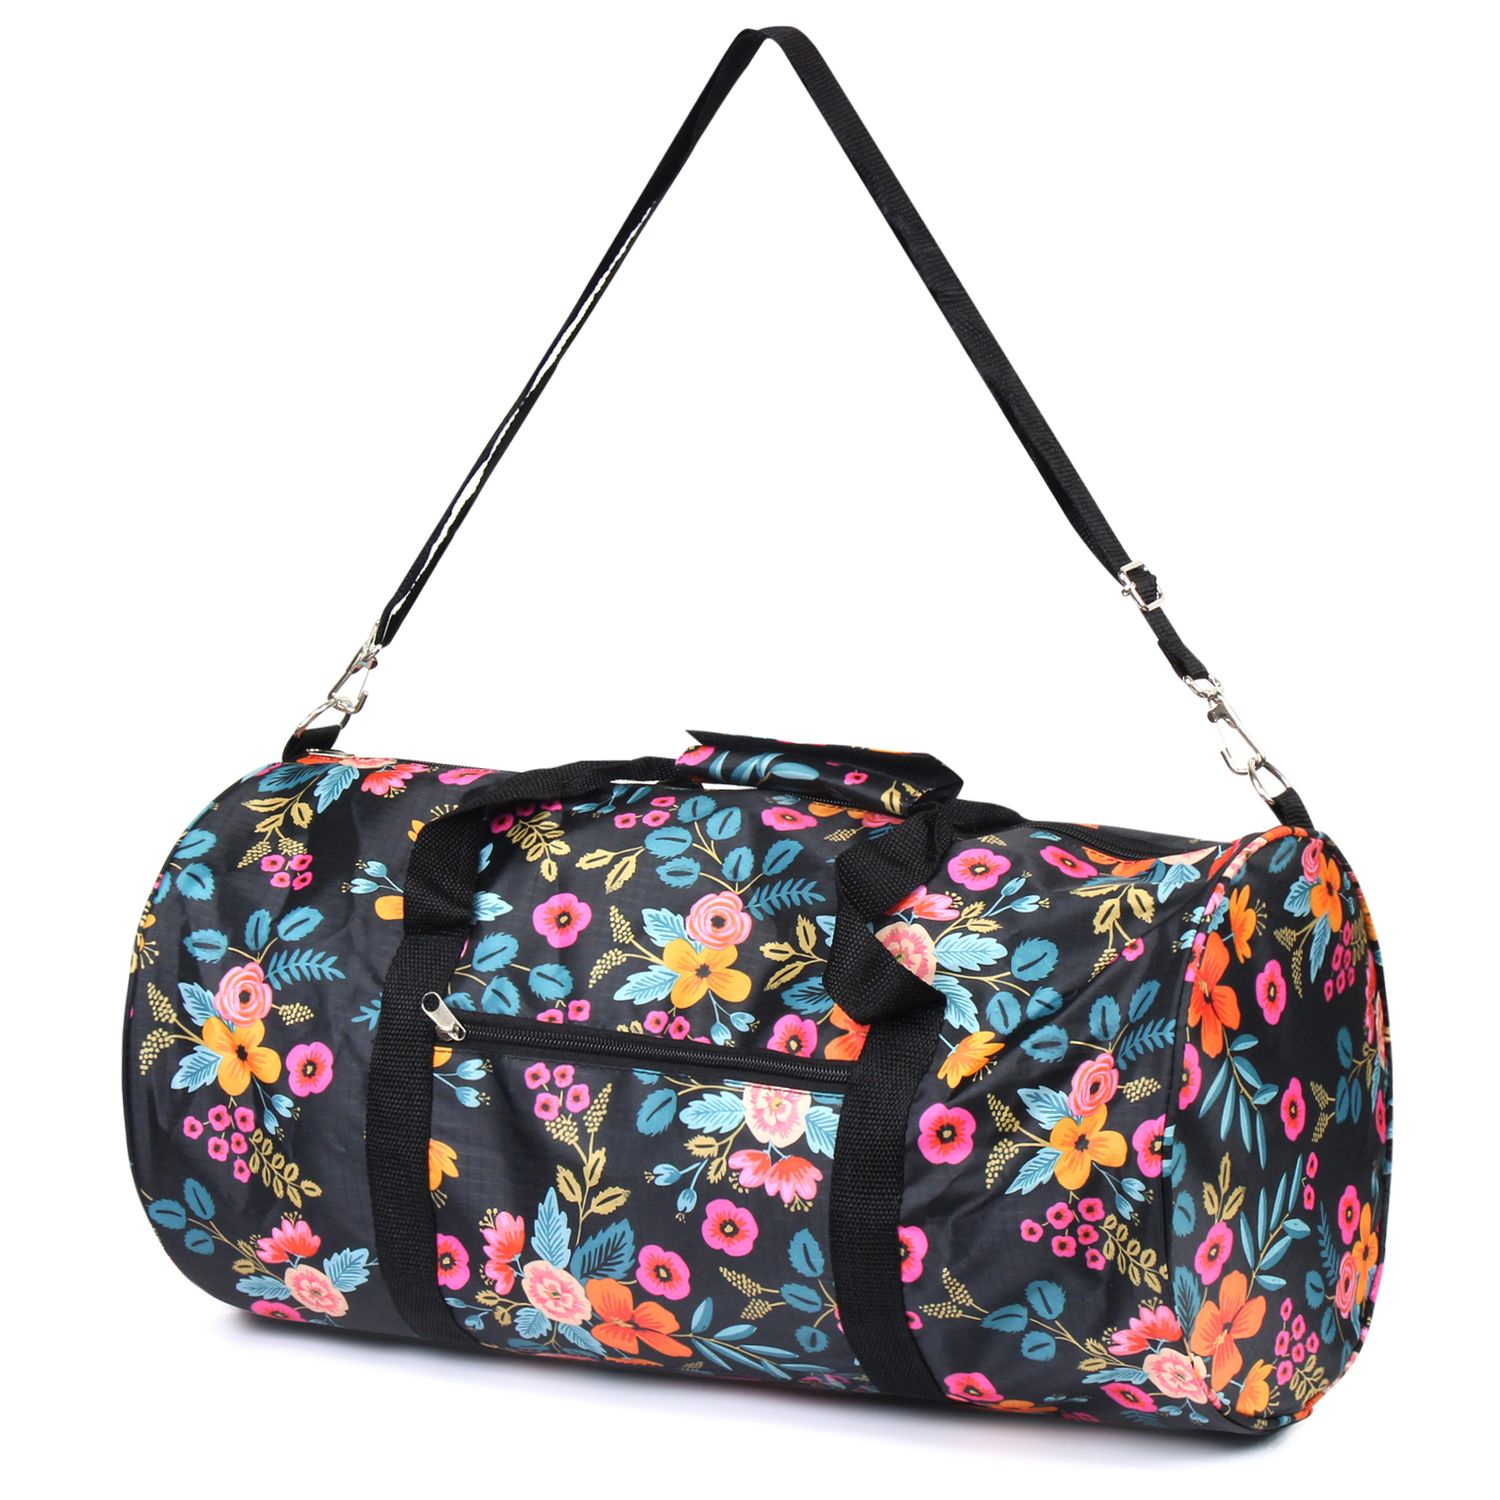 Zodaca Women Marion Floral Small Duffel Gym Travel Bag Soulder Carry Bag by Zodaca